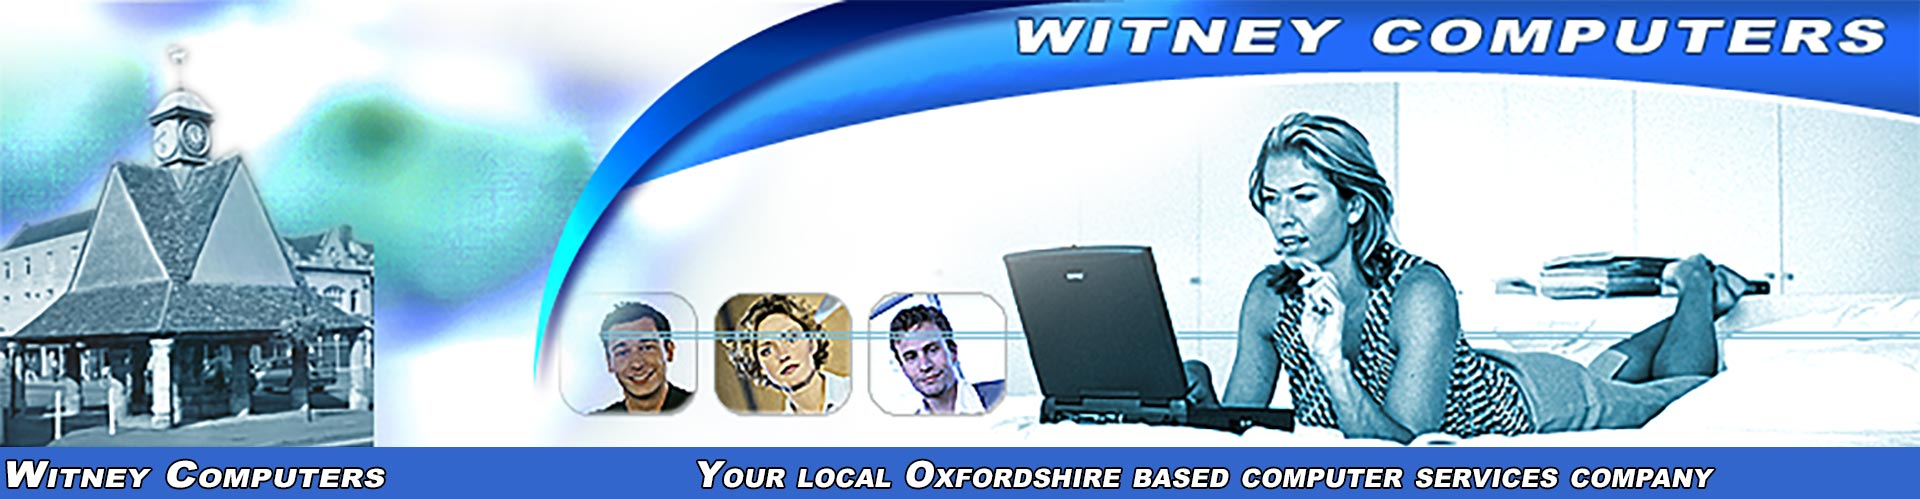 Witney Computers